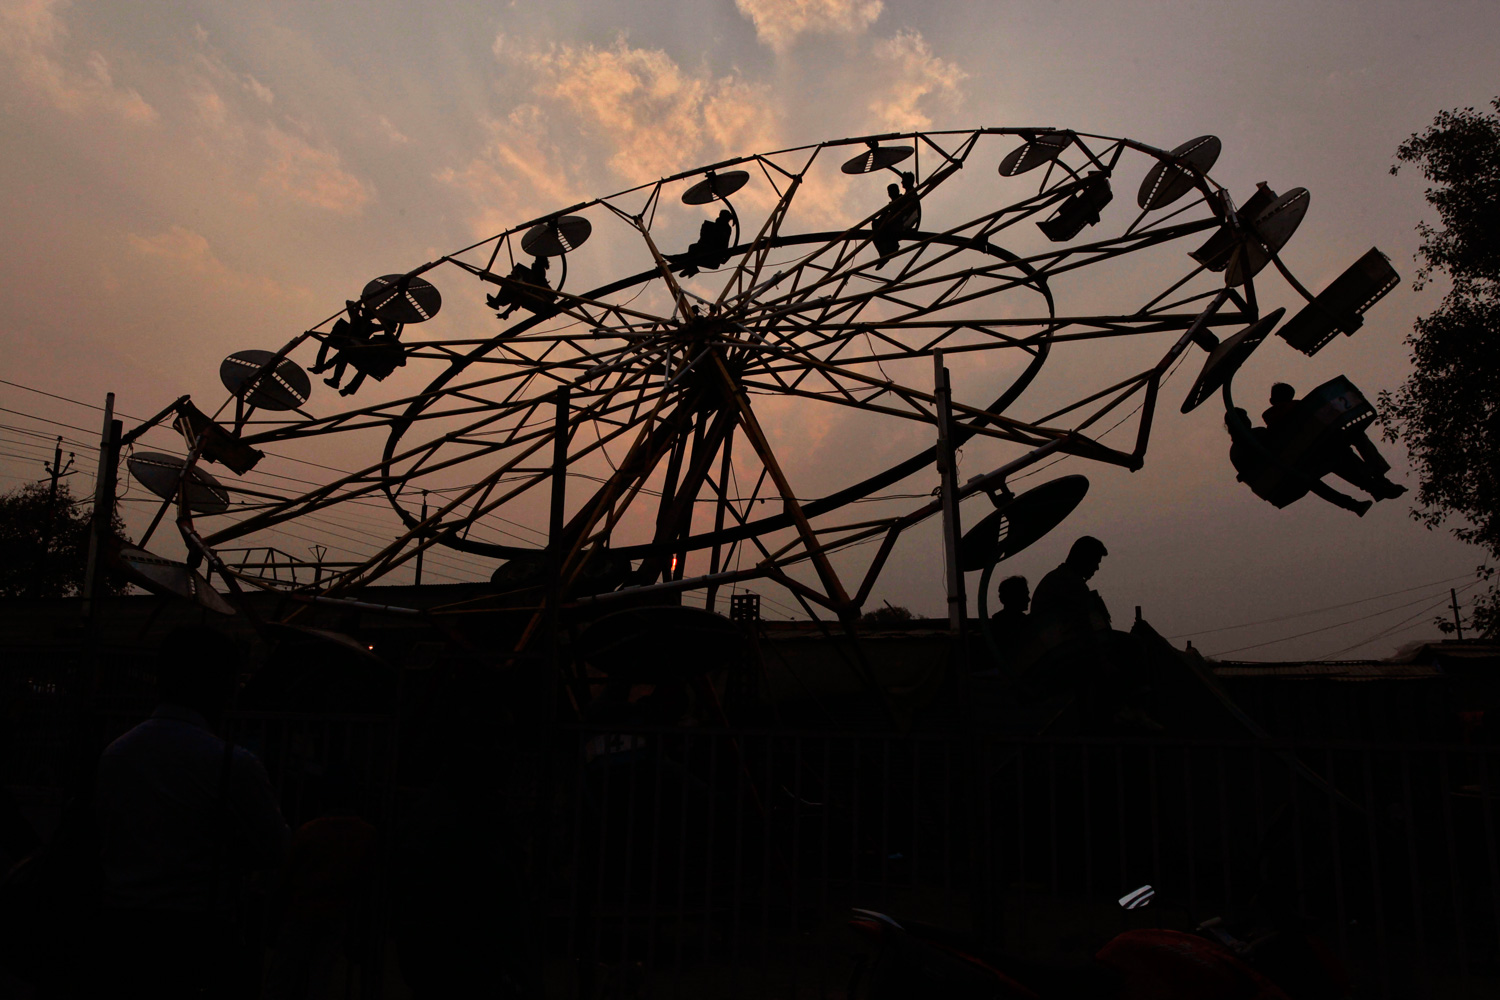 January 18, 2012. Hindu devotees are silhouetted as they ride a giant fair-ride wheel at the Sangam, the confluence of the rivers Ganges, Yamuna and the mythical Saraswati during the annual month-long Hindu religious fair of Magh Mela in Allahabad, India.